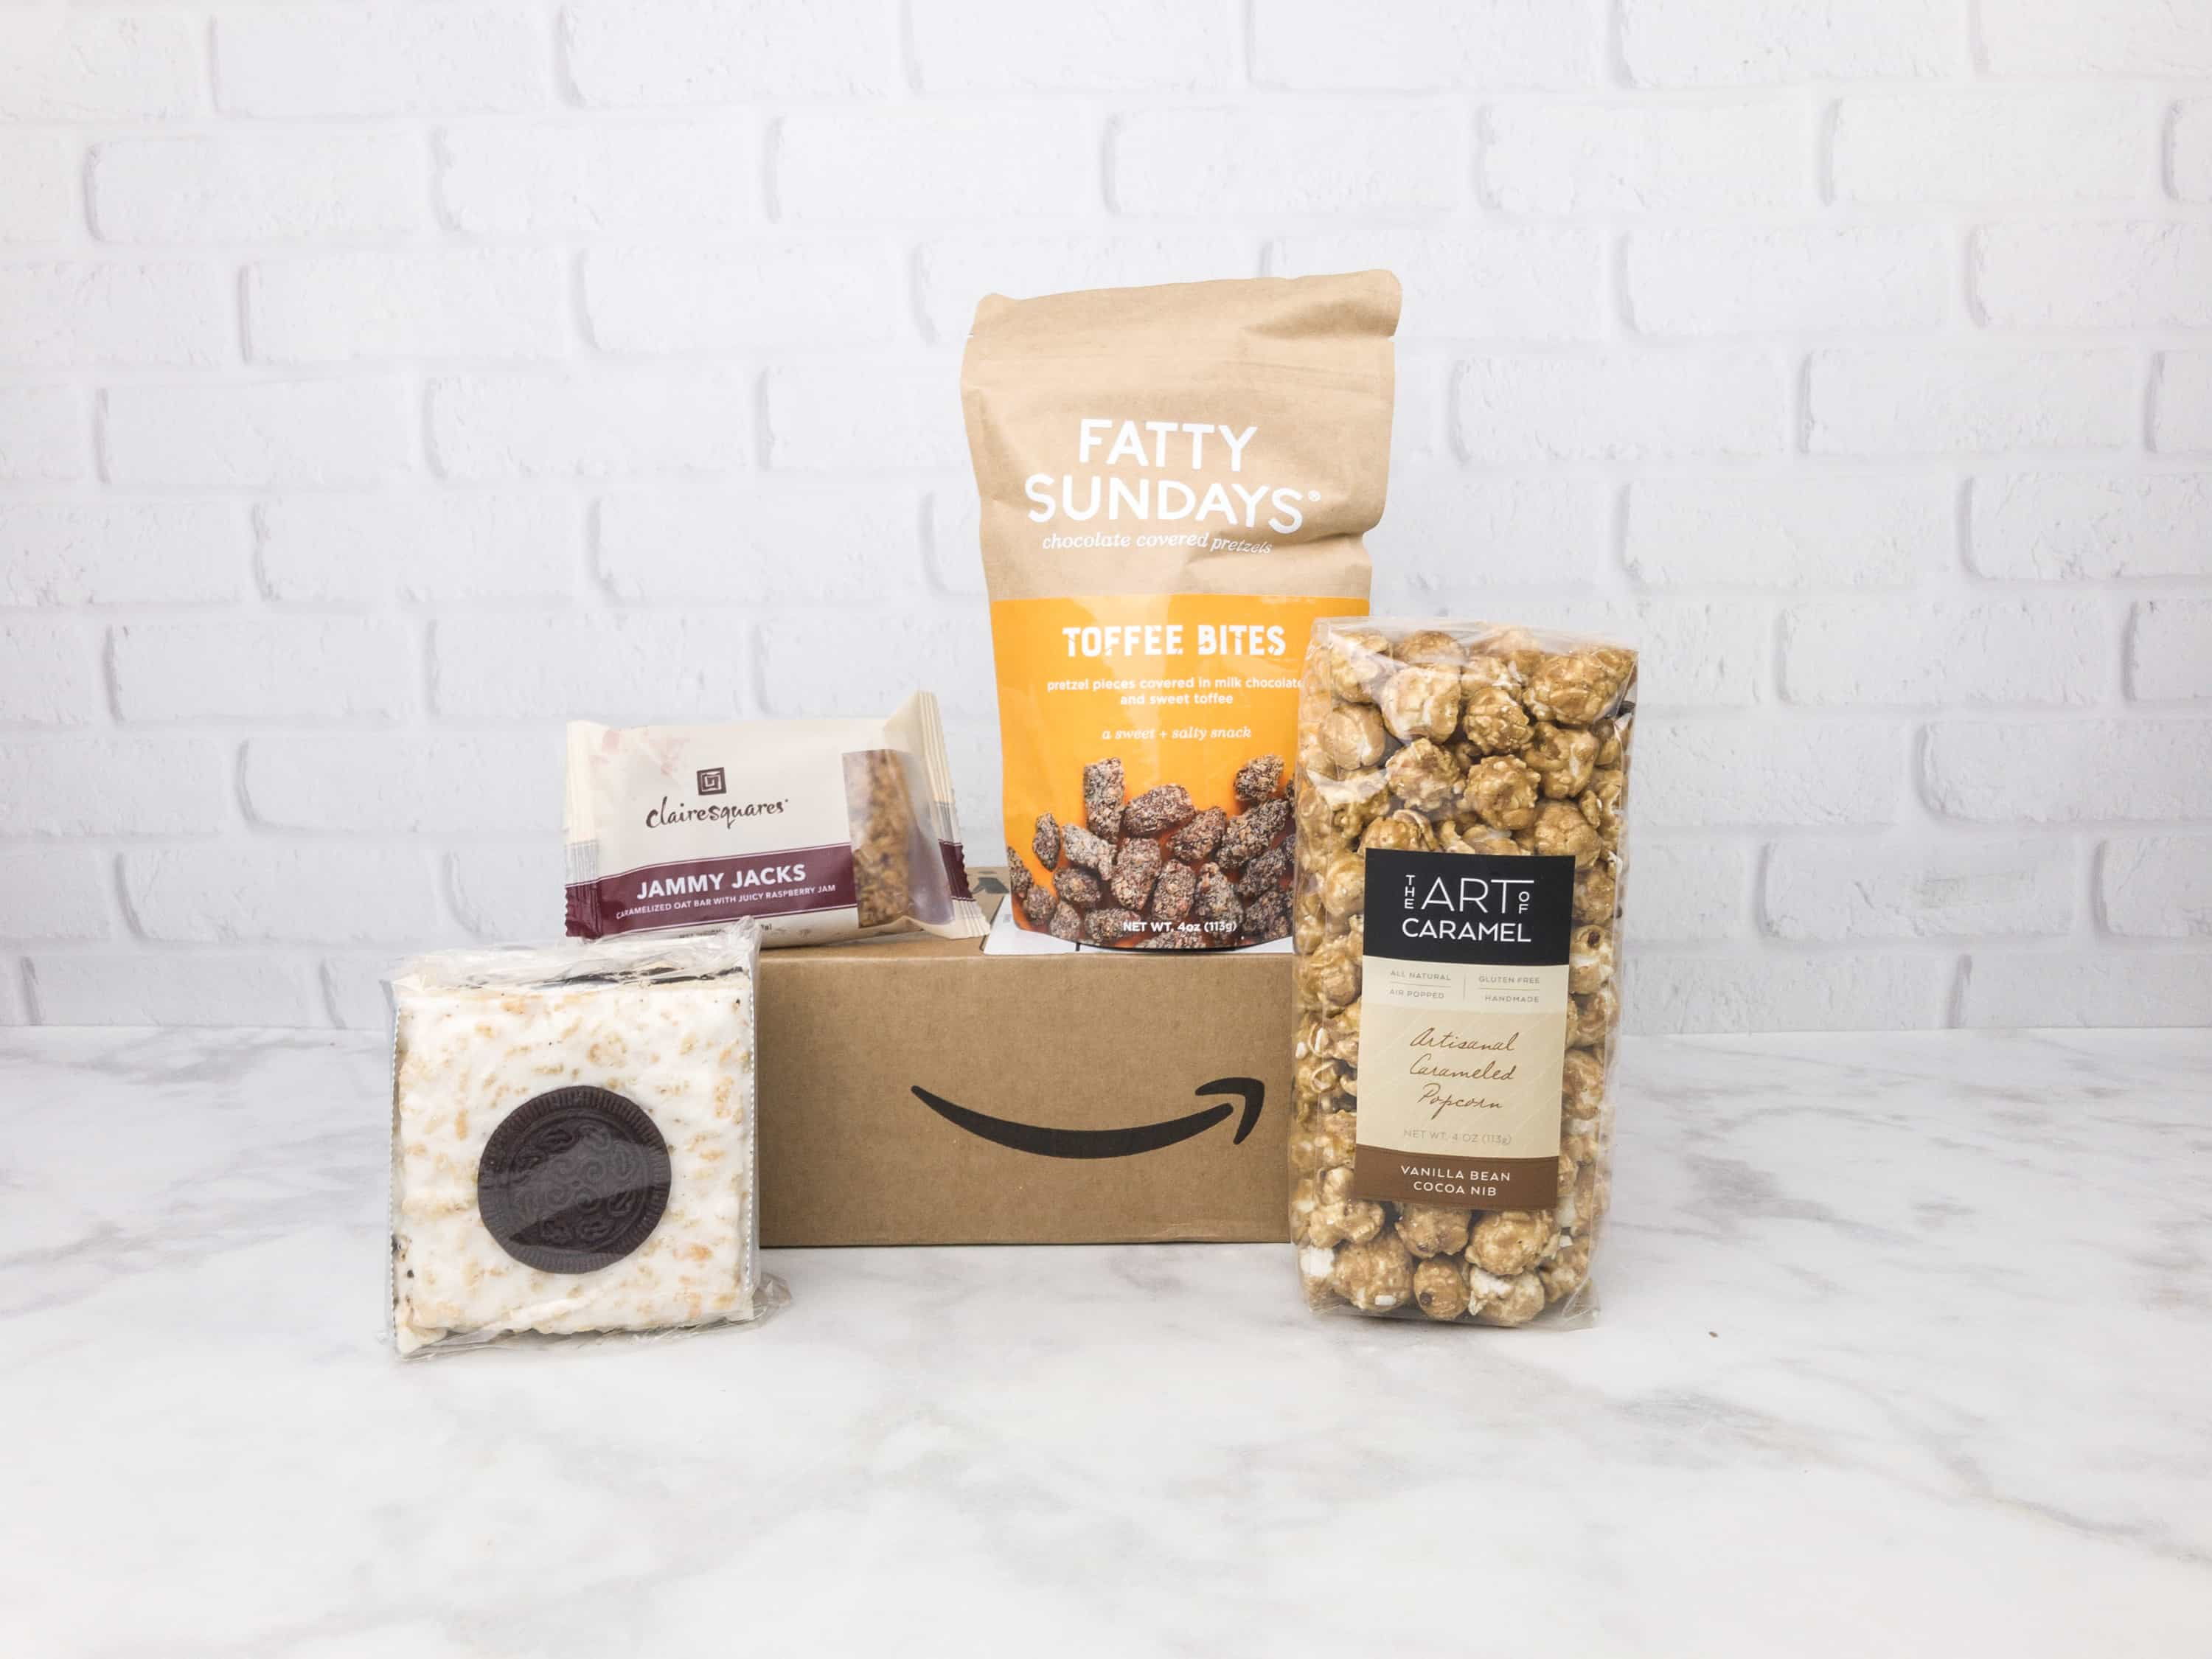 Amazon Prime Surprise Sweets Box August 2017 Review #2